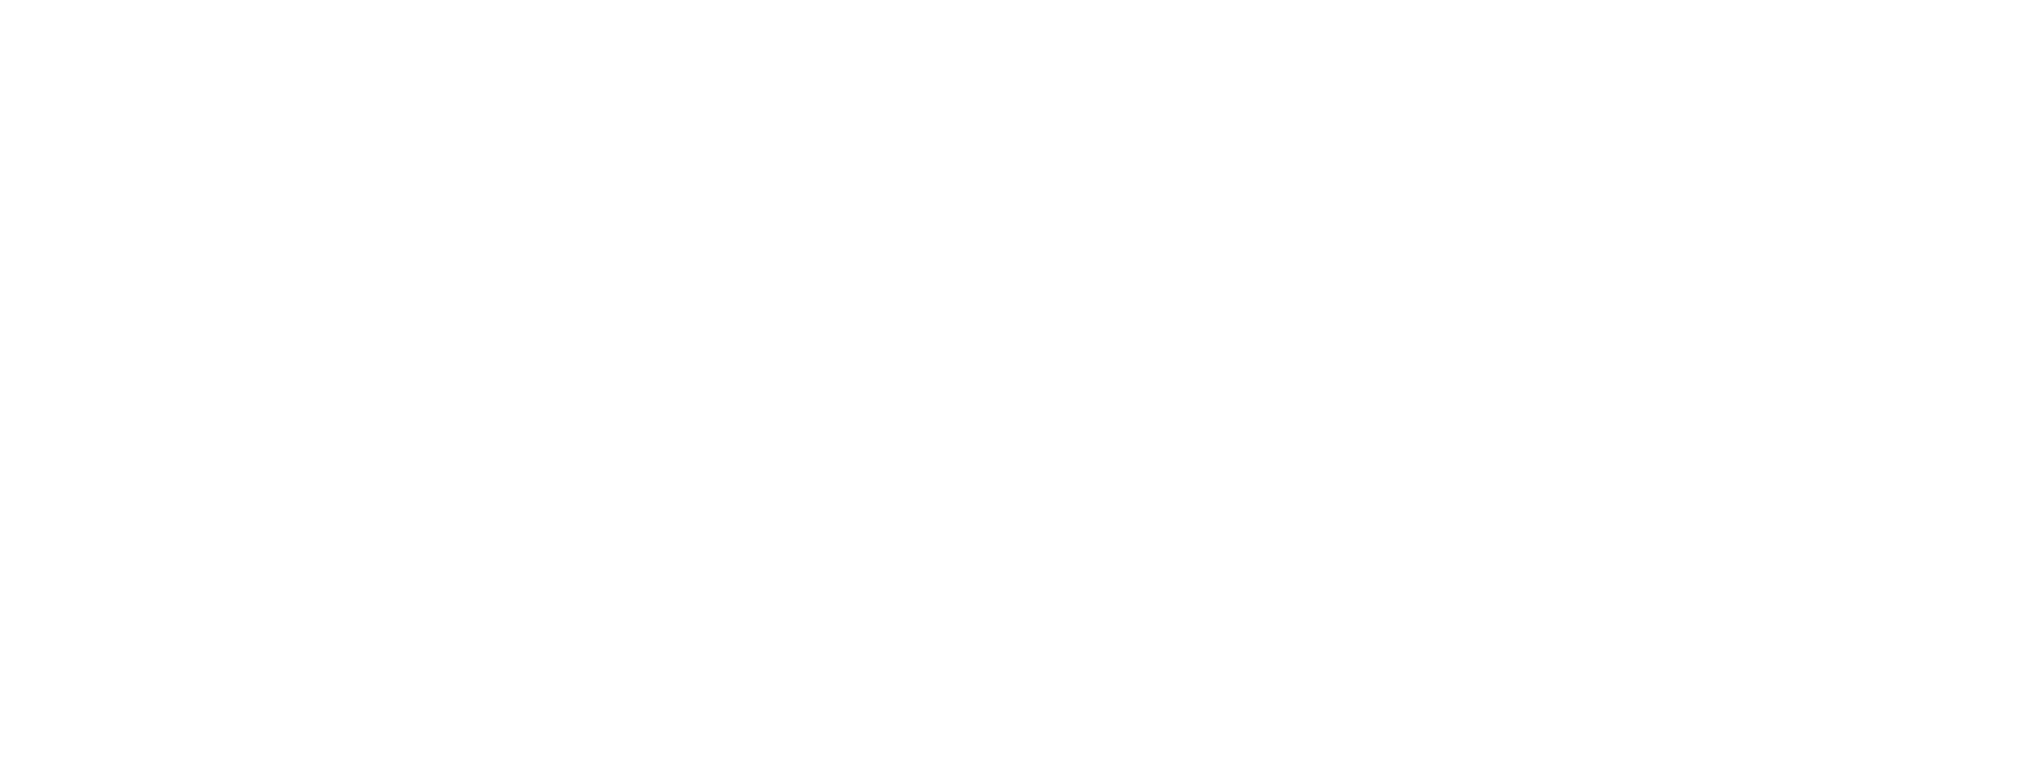 Boxted10k